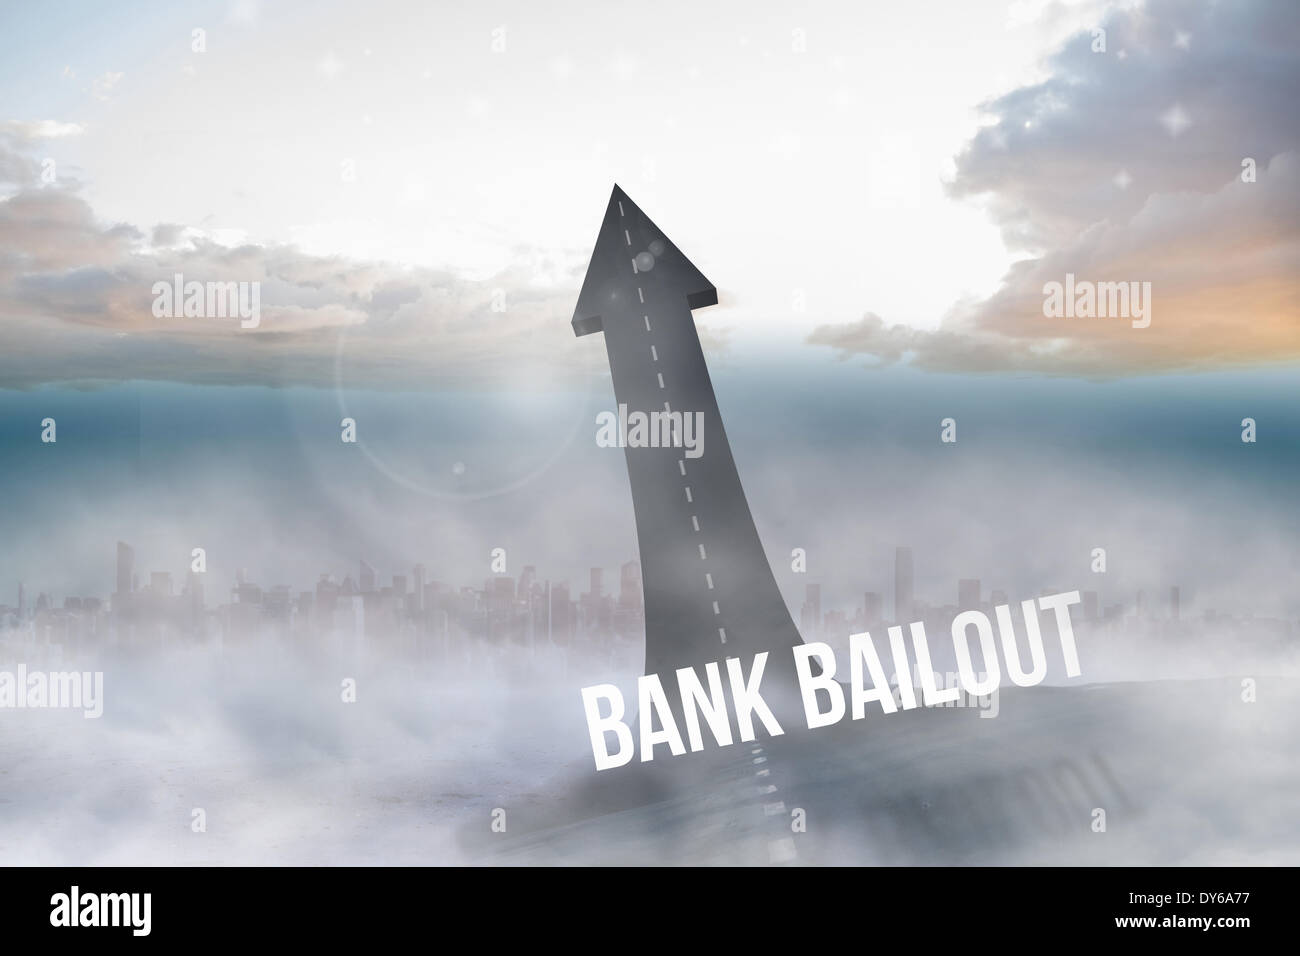 Bank bailout against road turning into arrow - Stock Image